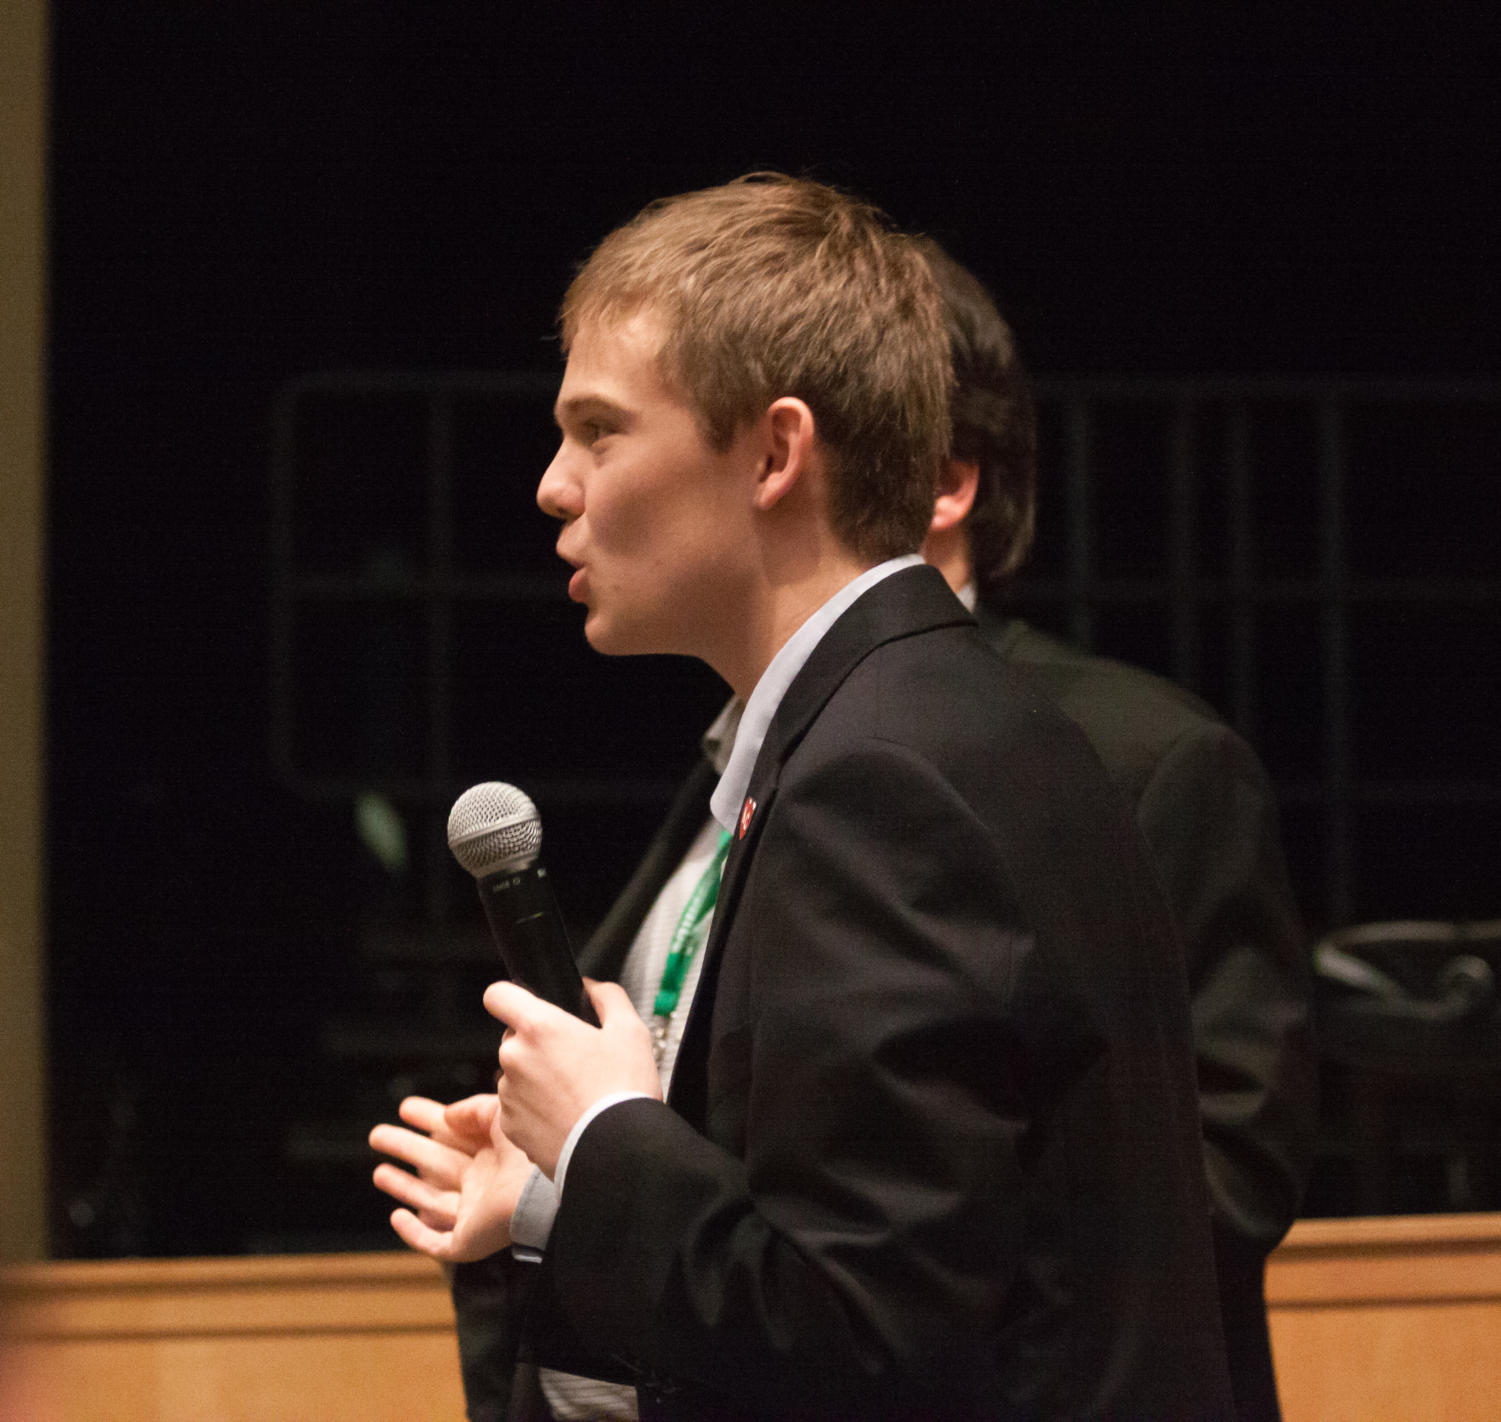 Tyler Ruzich adresses an audience member while answering a question. Ruzich describes himself as a Republican because his parents were able to go to college without government assistance.